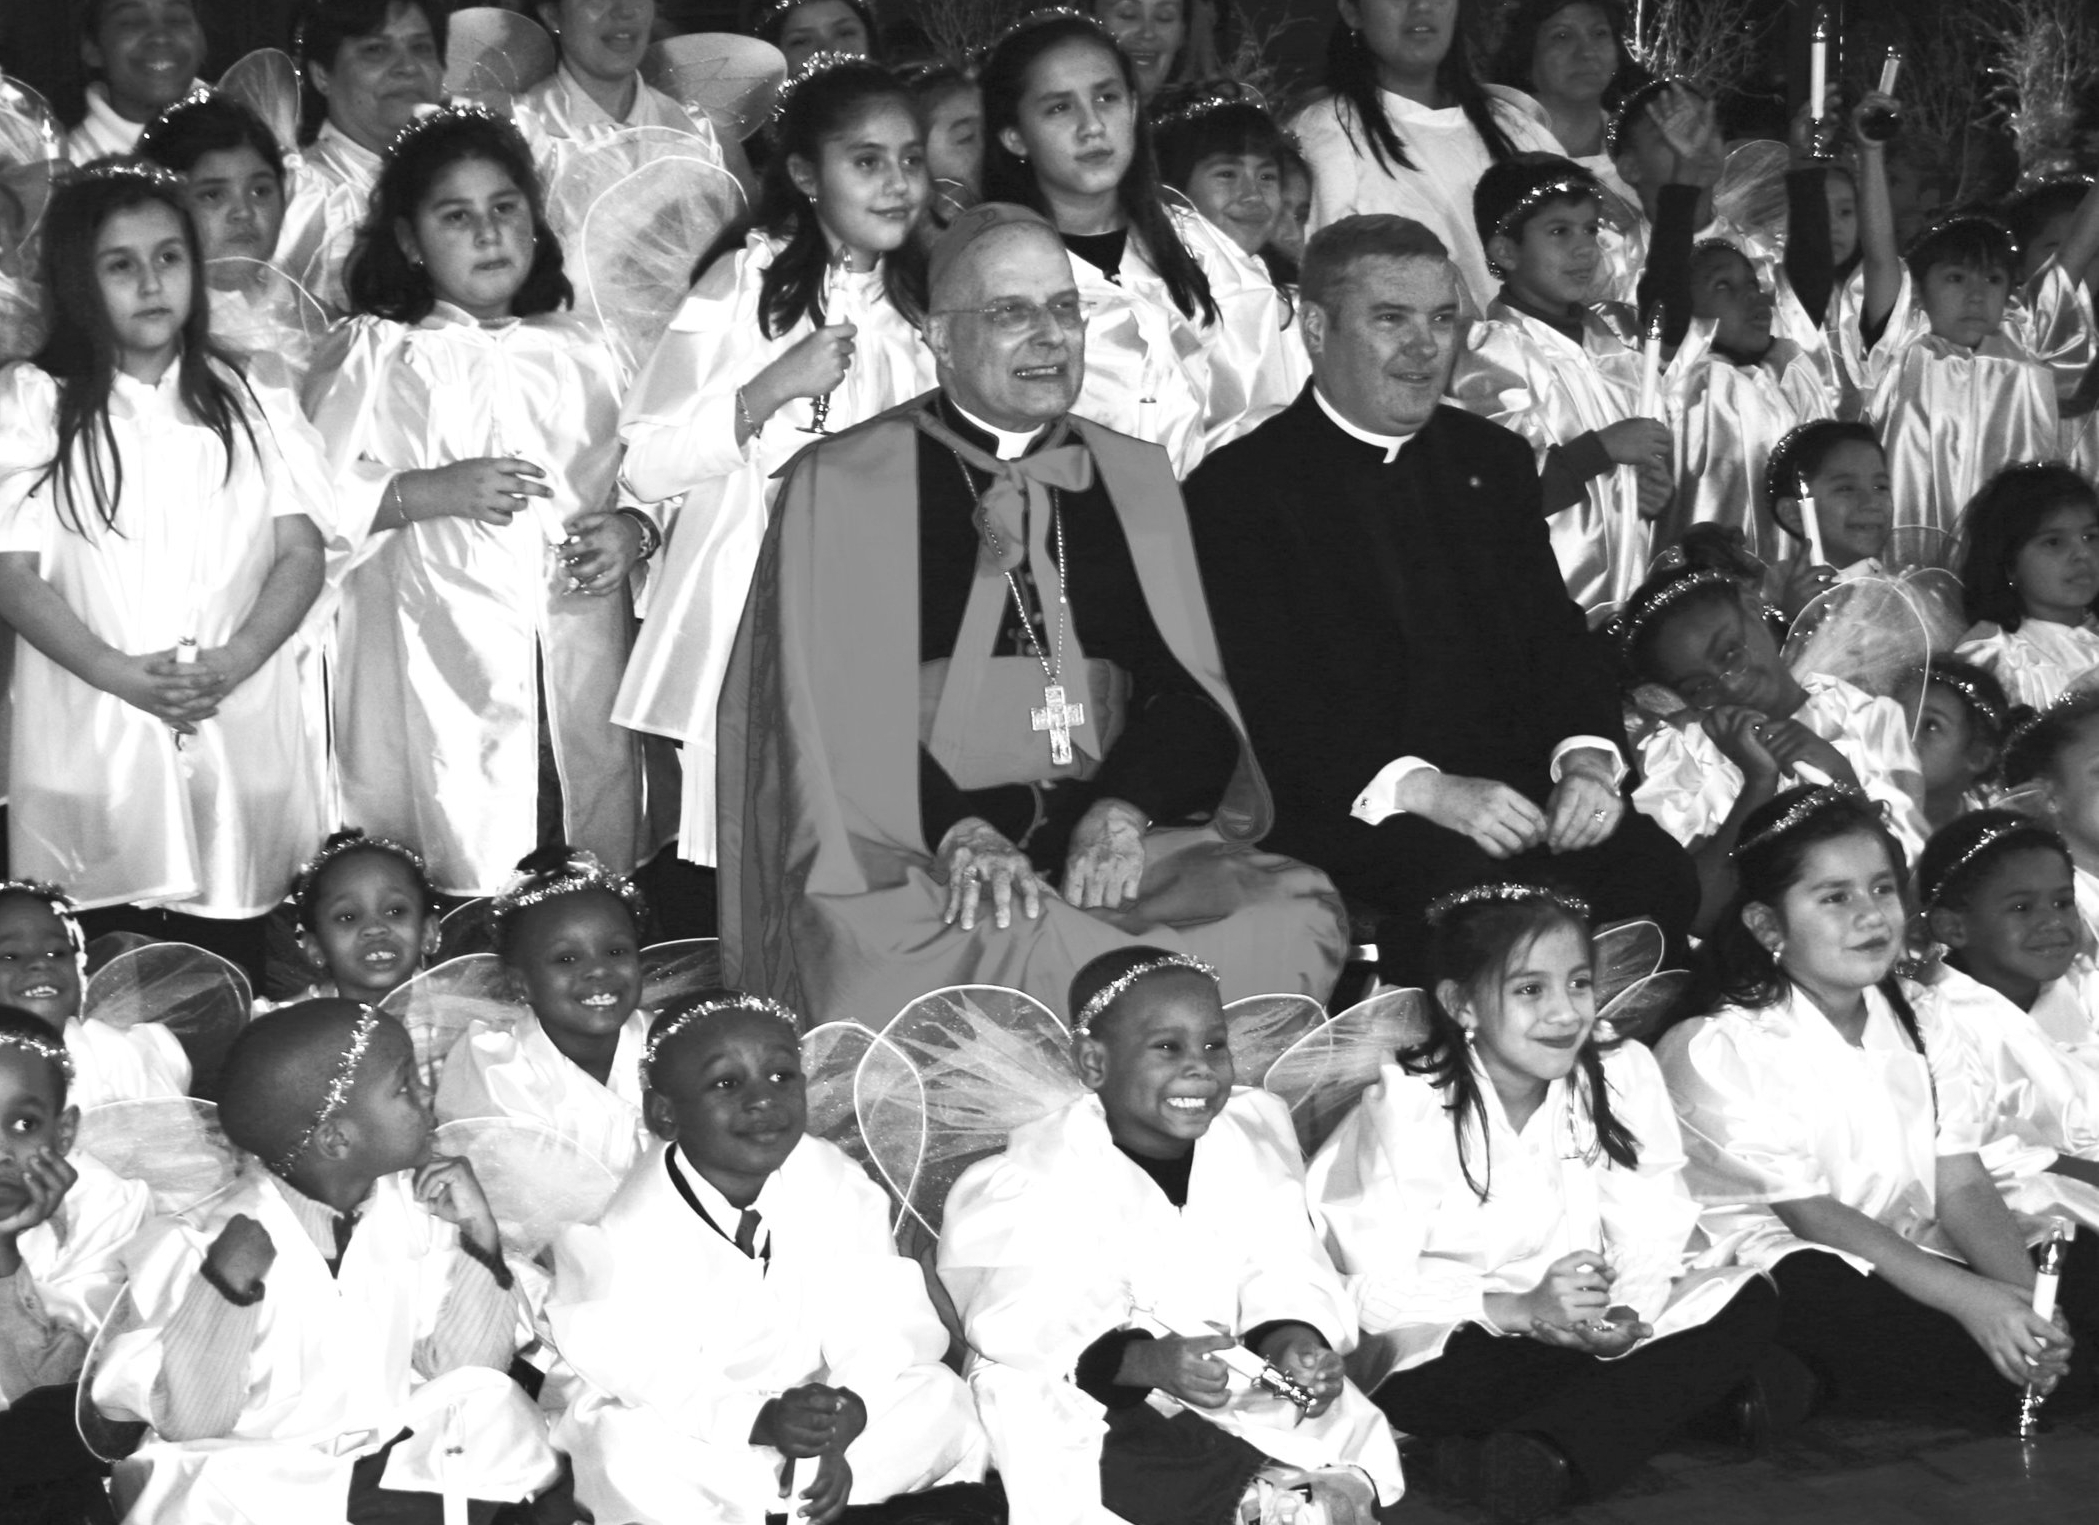 Cardinal George and Monsignor Boland with the children at the Catholic Charities St. Nick Ball.